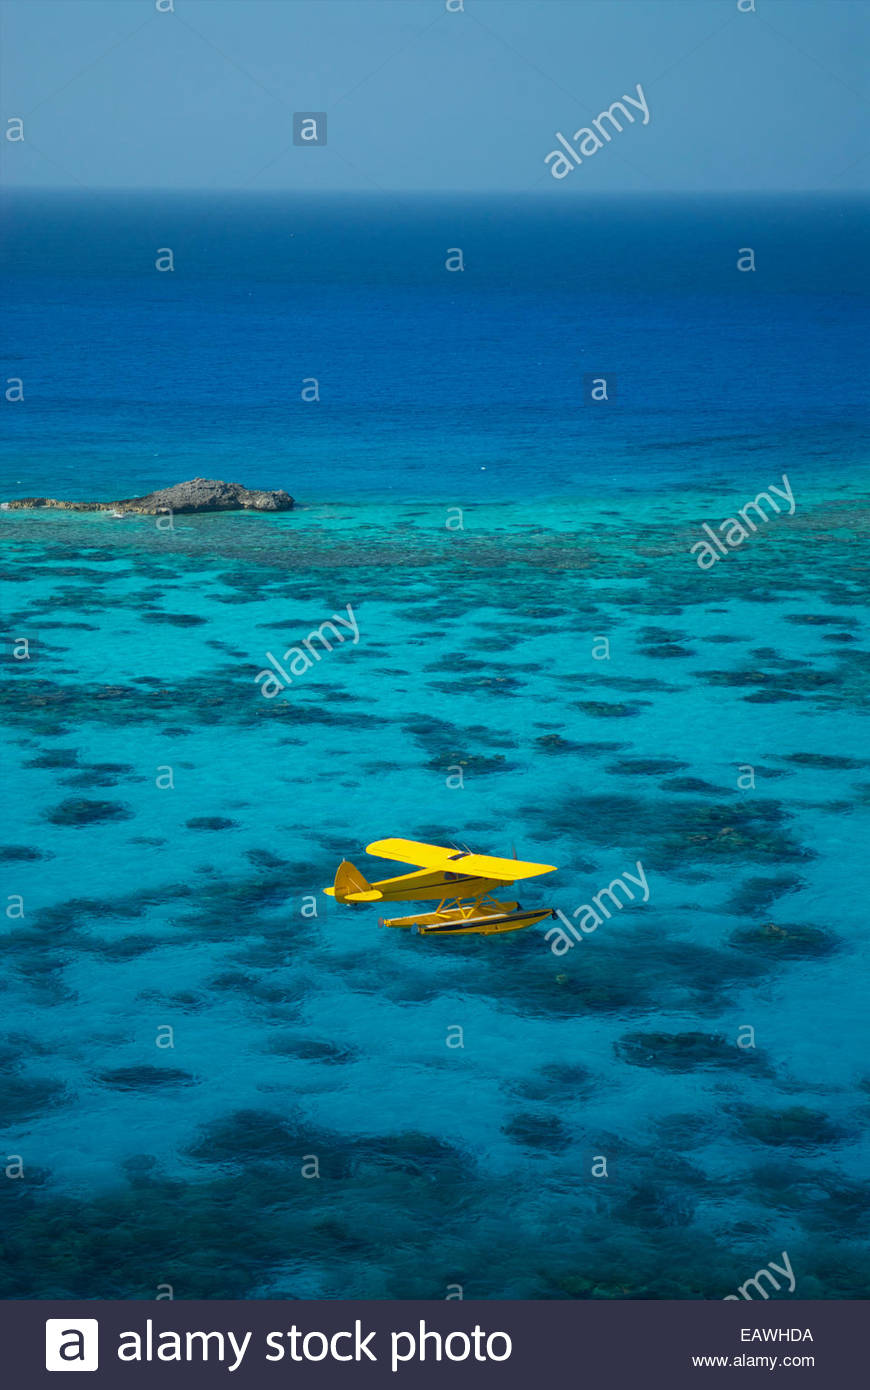 A Pa18 Super Cub Floatplane Explores The Ocean Off Conception Island